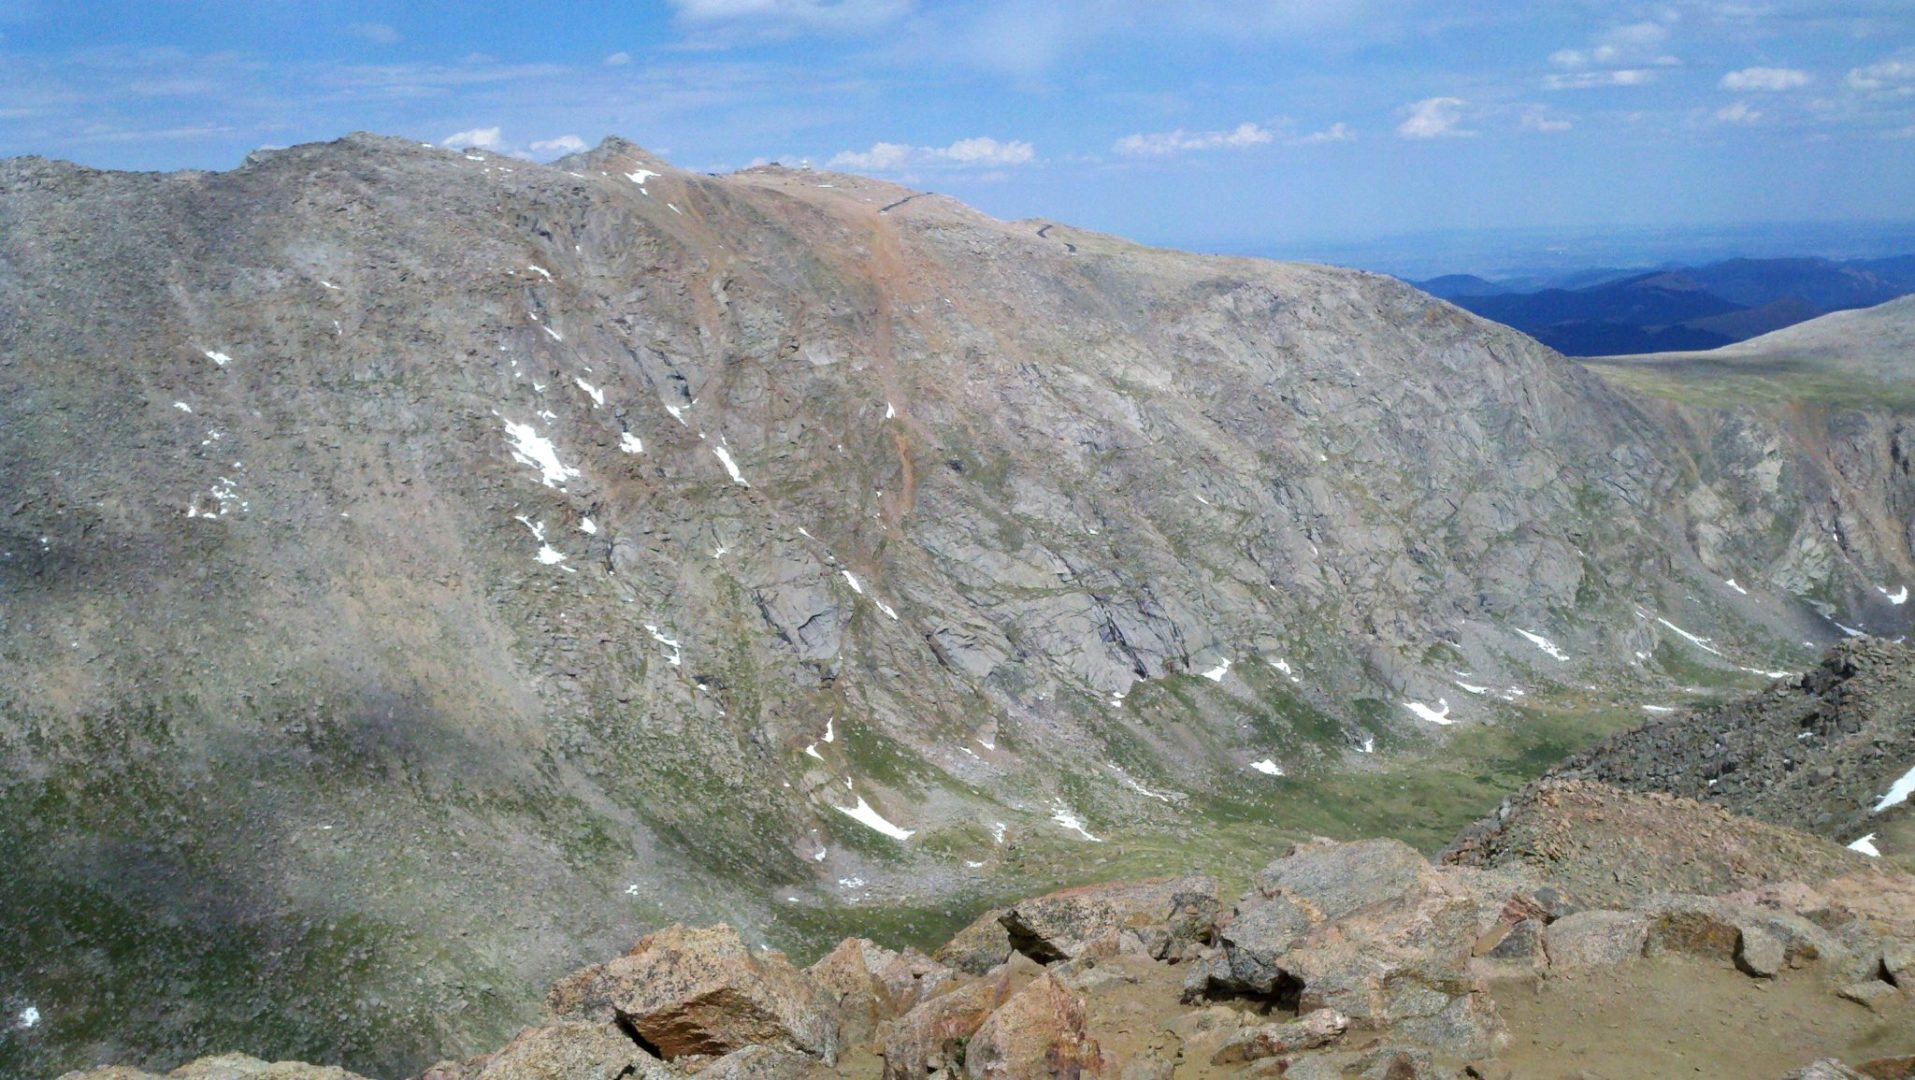 View of Mt Evans and the observatory